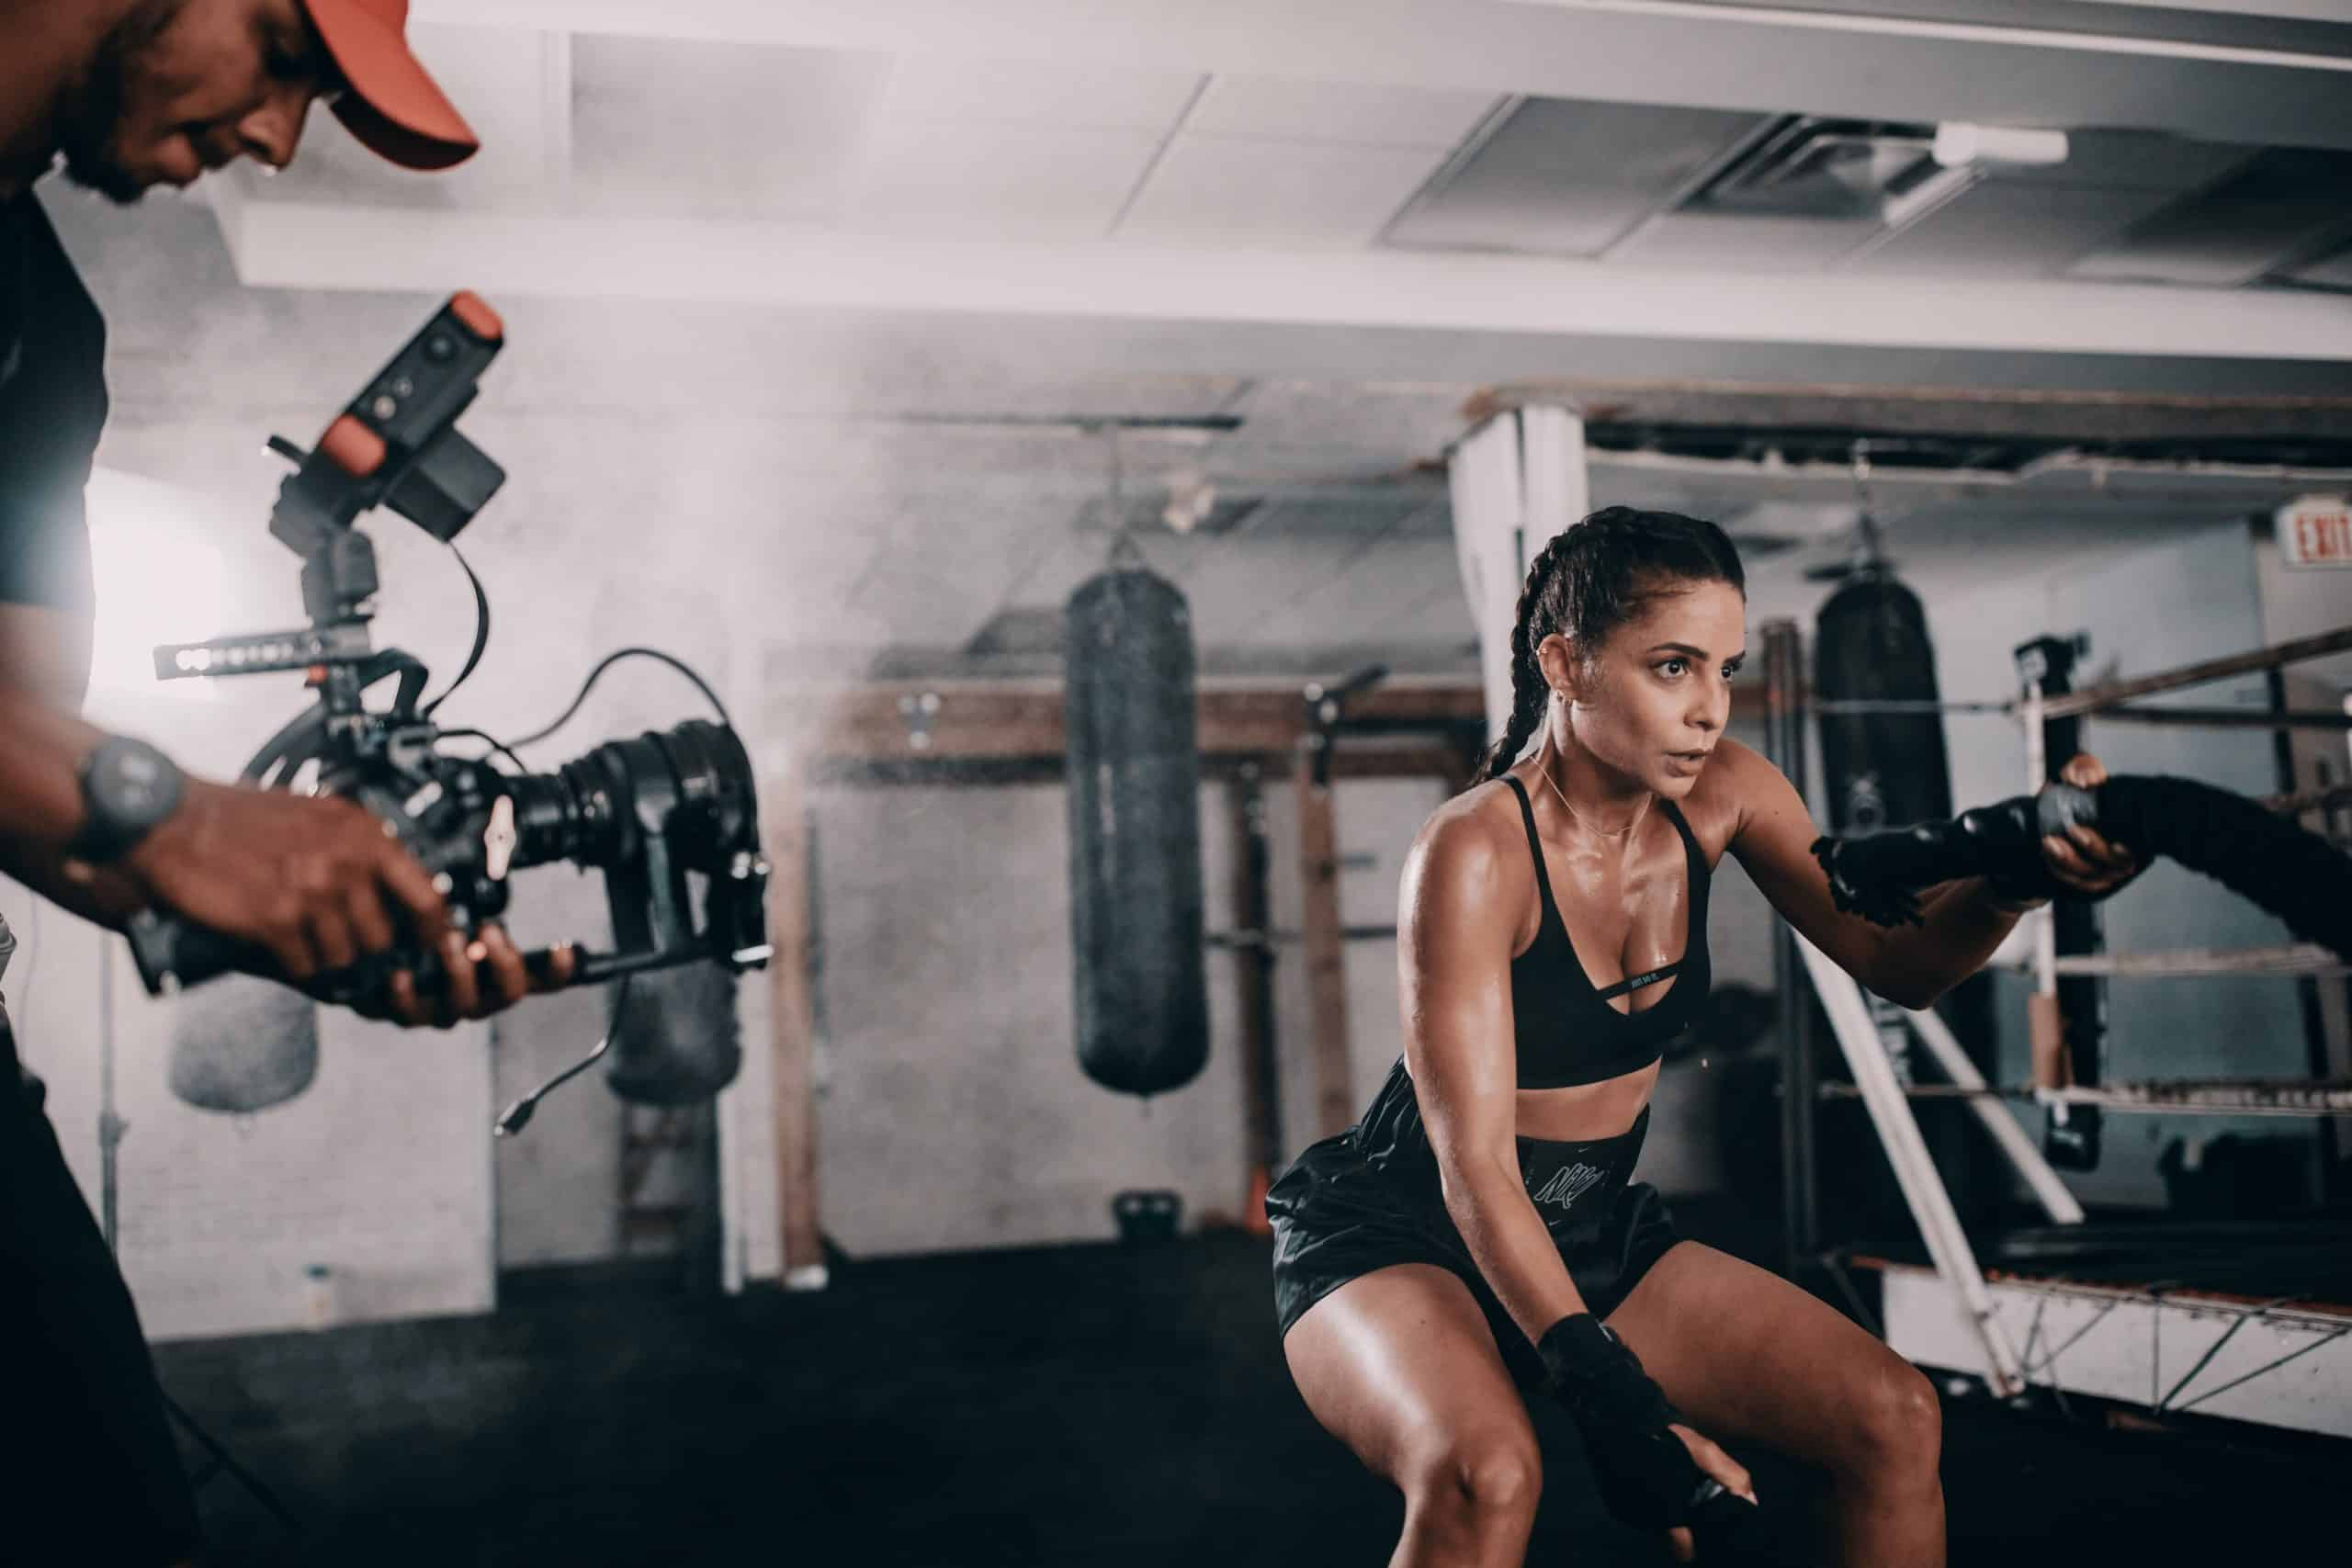 Gym Workout Routines - Learn How To Get The Most Out Of Your Routine